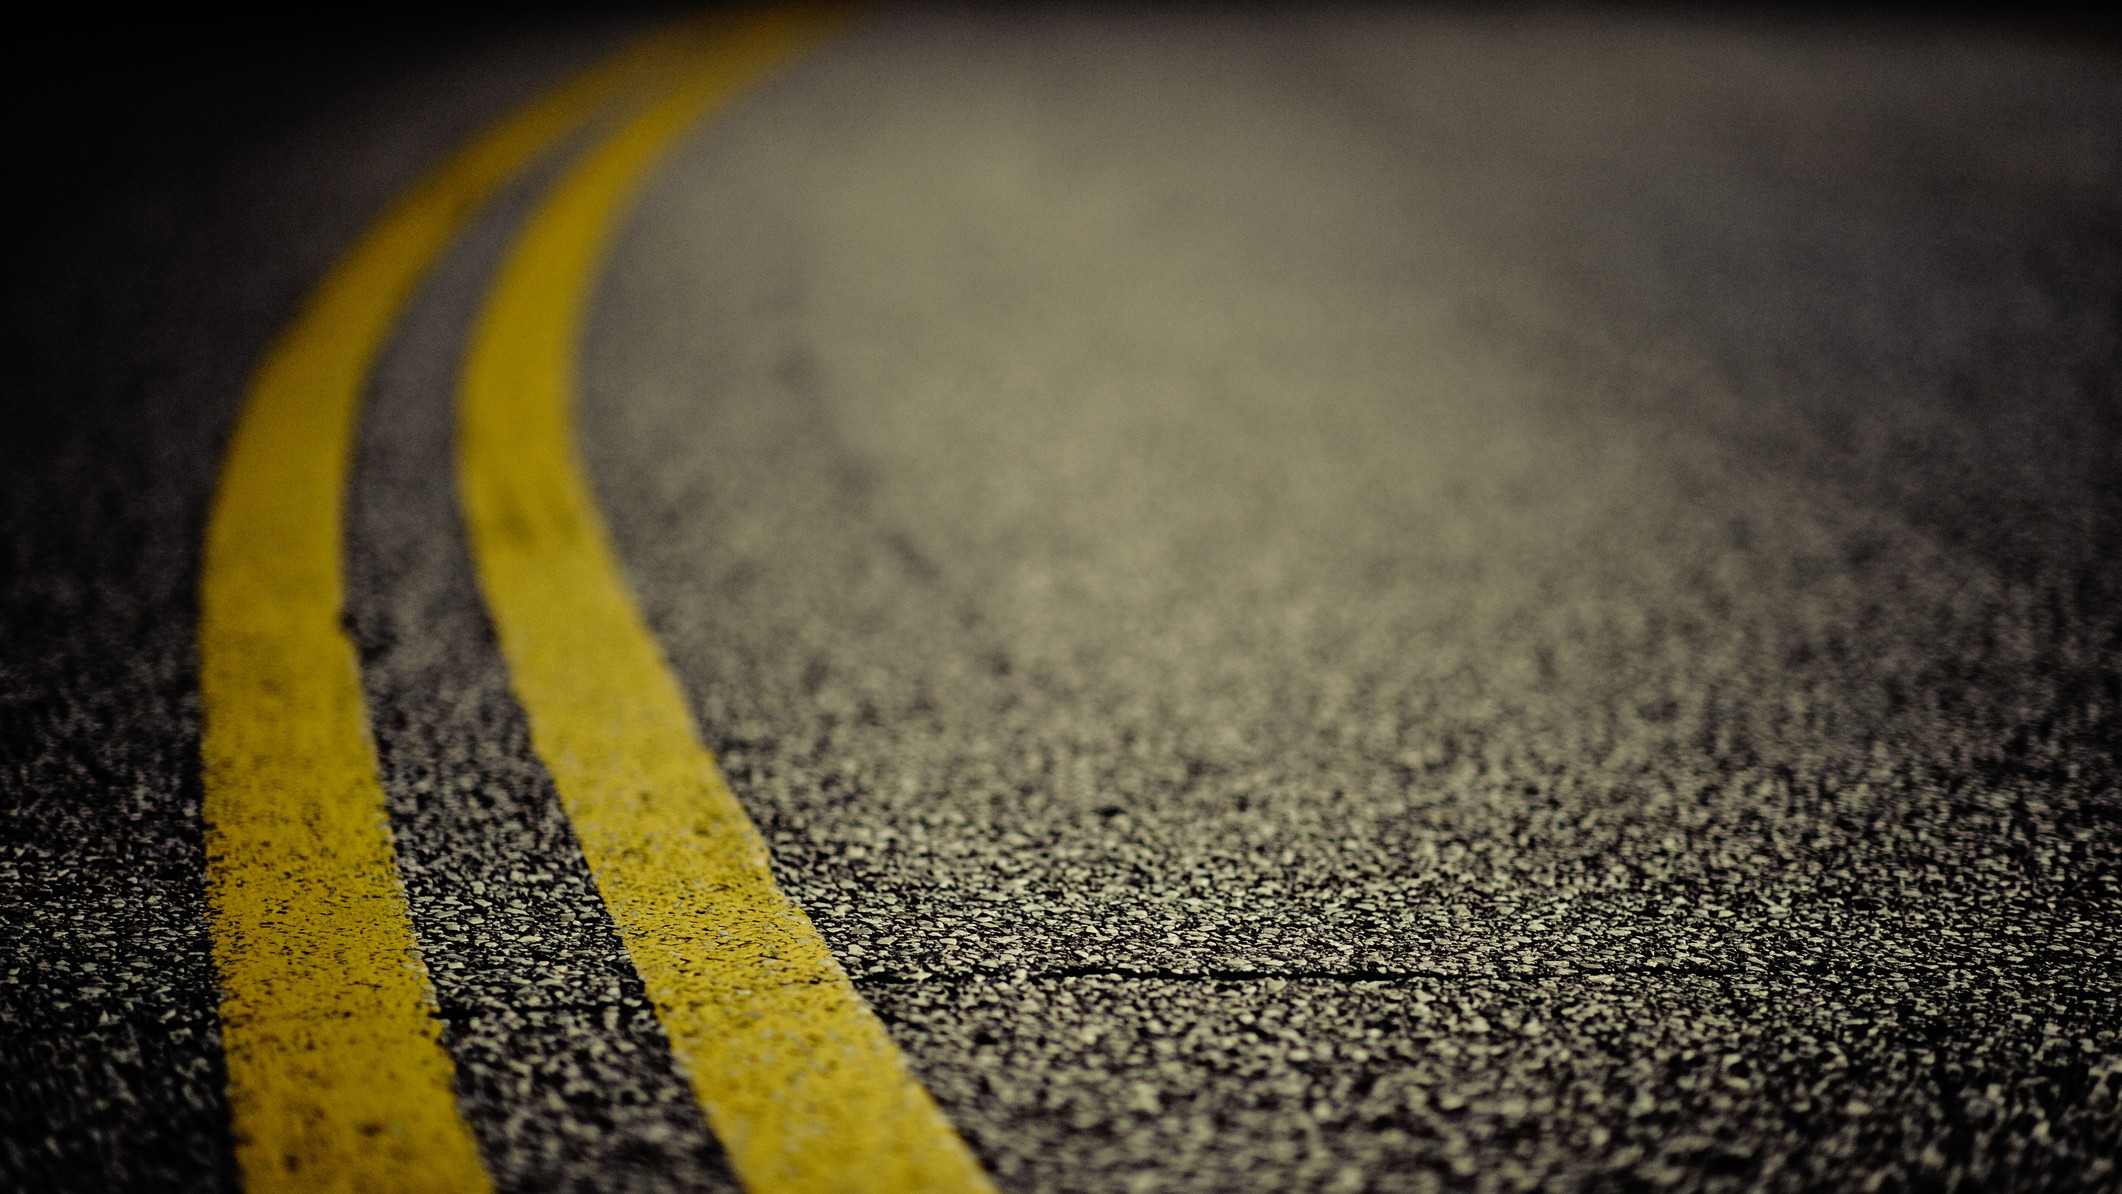 23-Year-Old Woman Killed in Clinton When Driver Hit Her Car Head-On